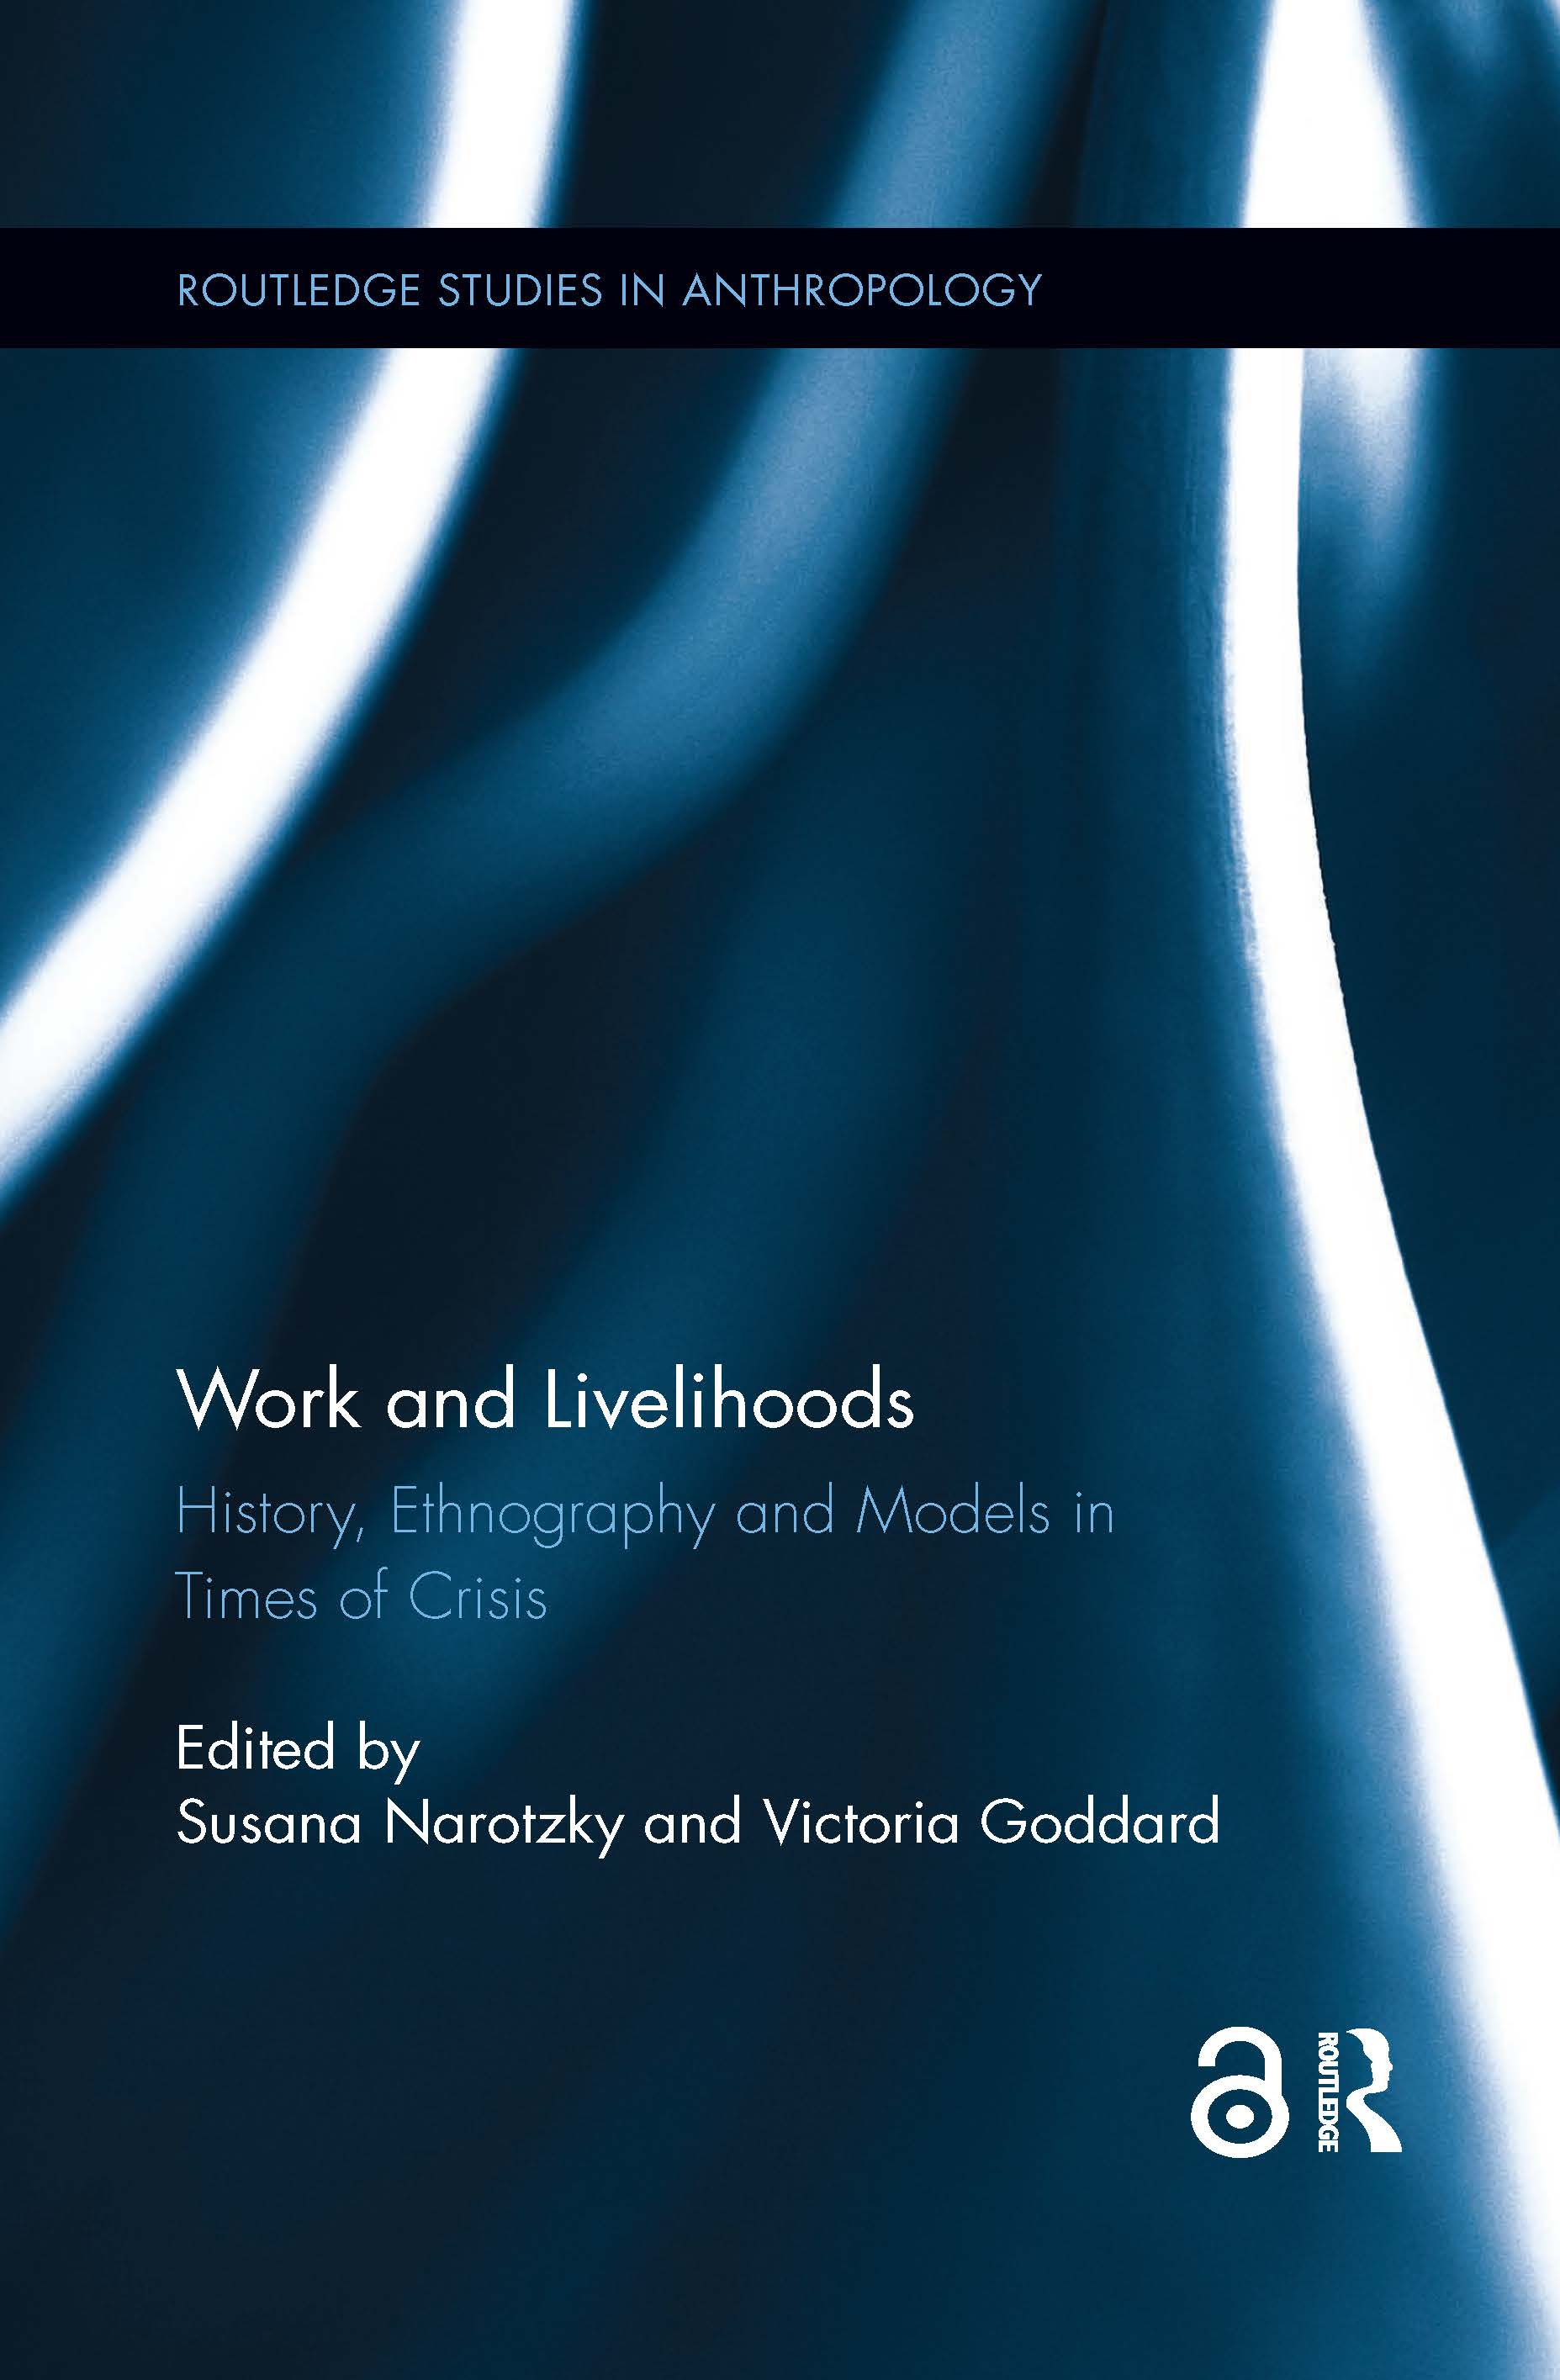 Work and Livelihoods: History, Ethnography and Models in Times of Crisis book cover